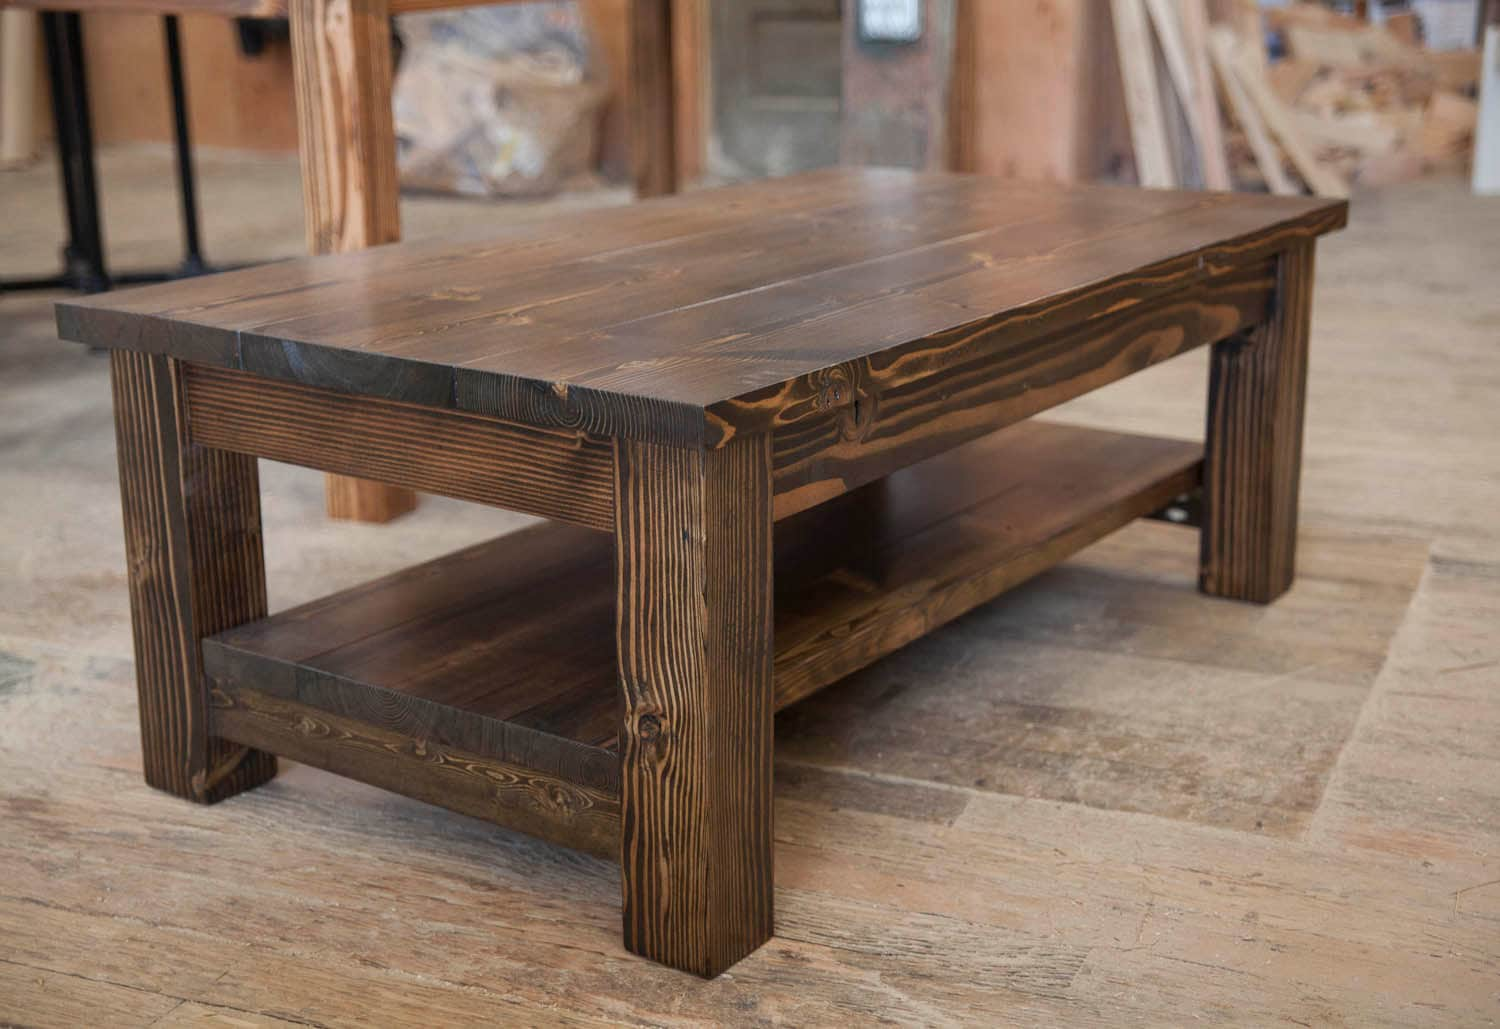 Rustic Coffee Table.Farmhouse Coffee Table Rustic Coffee Table Solid Wood Farmhouse Coffee Table Built To Order